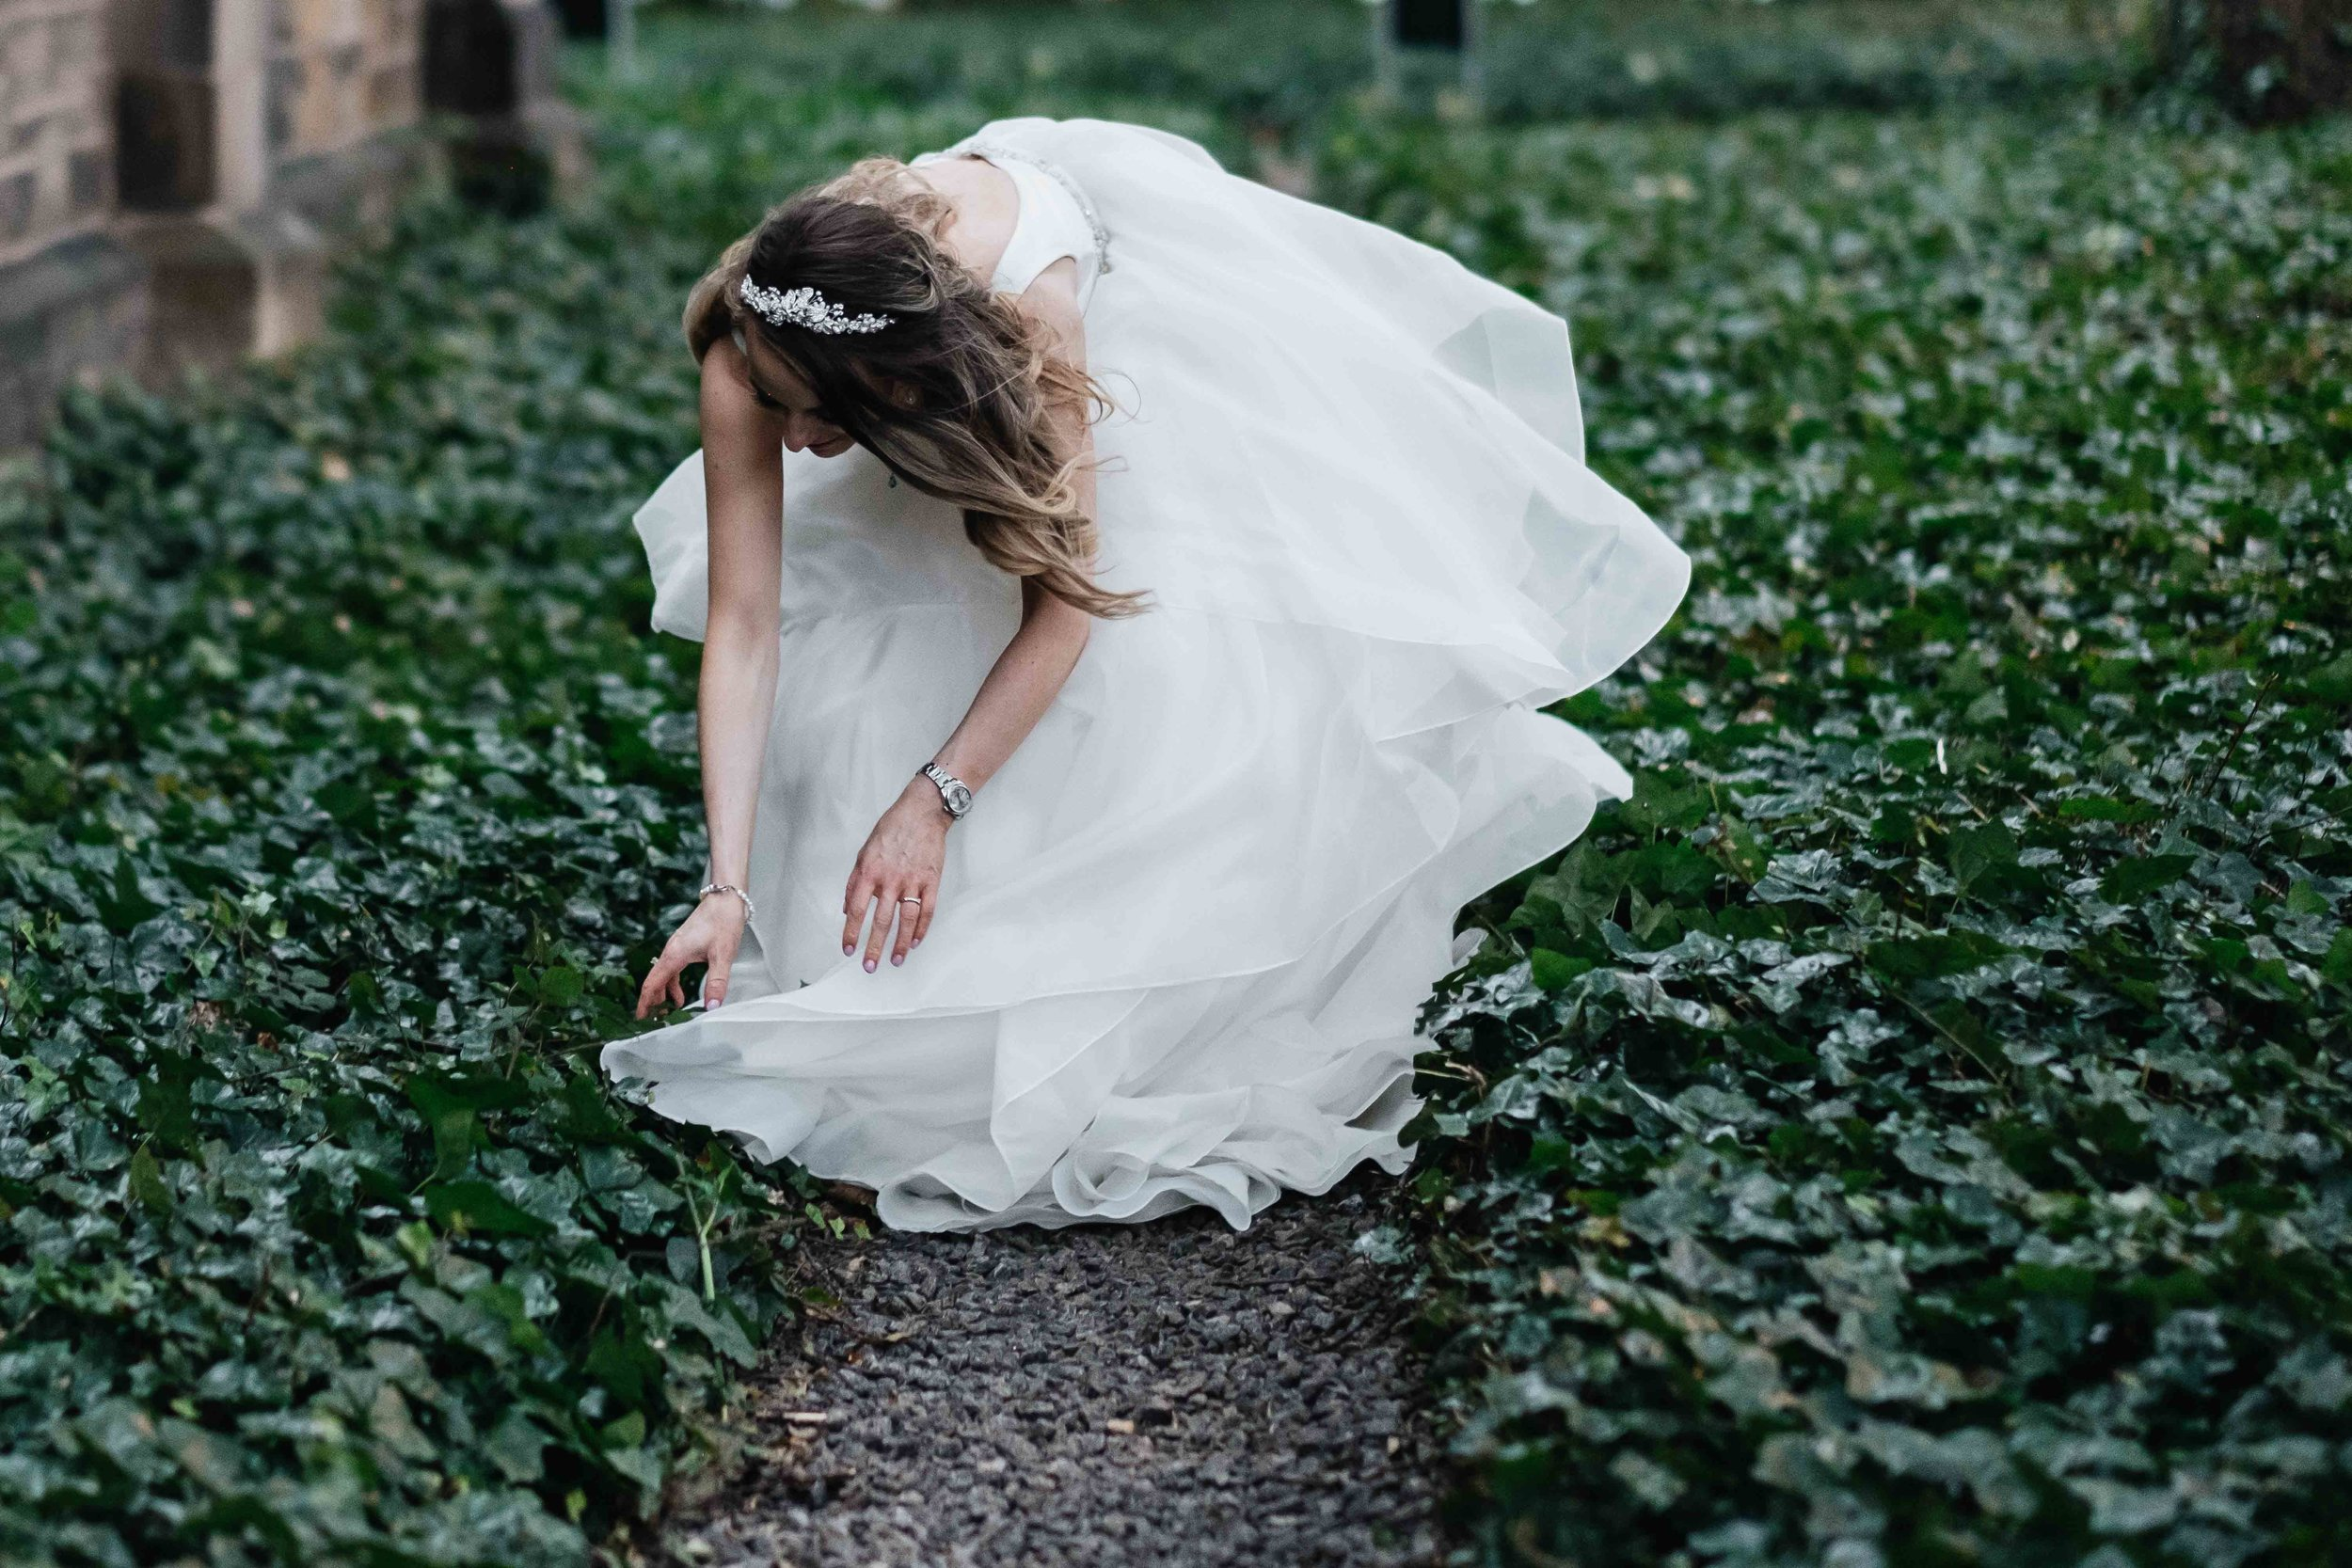 bride is bent over, detatching her dress from foliage